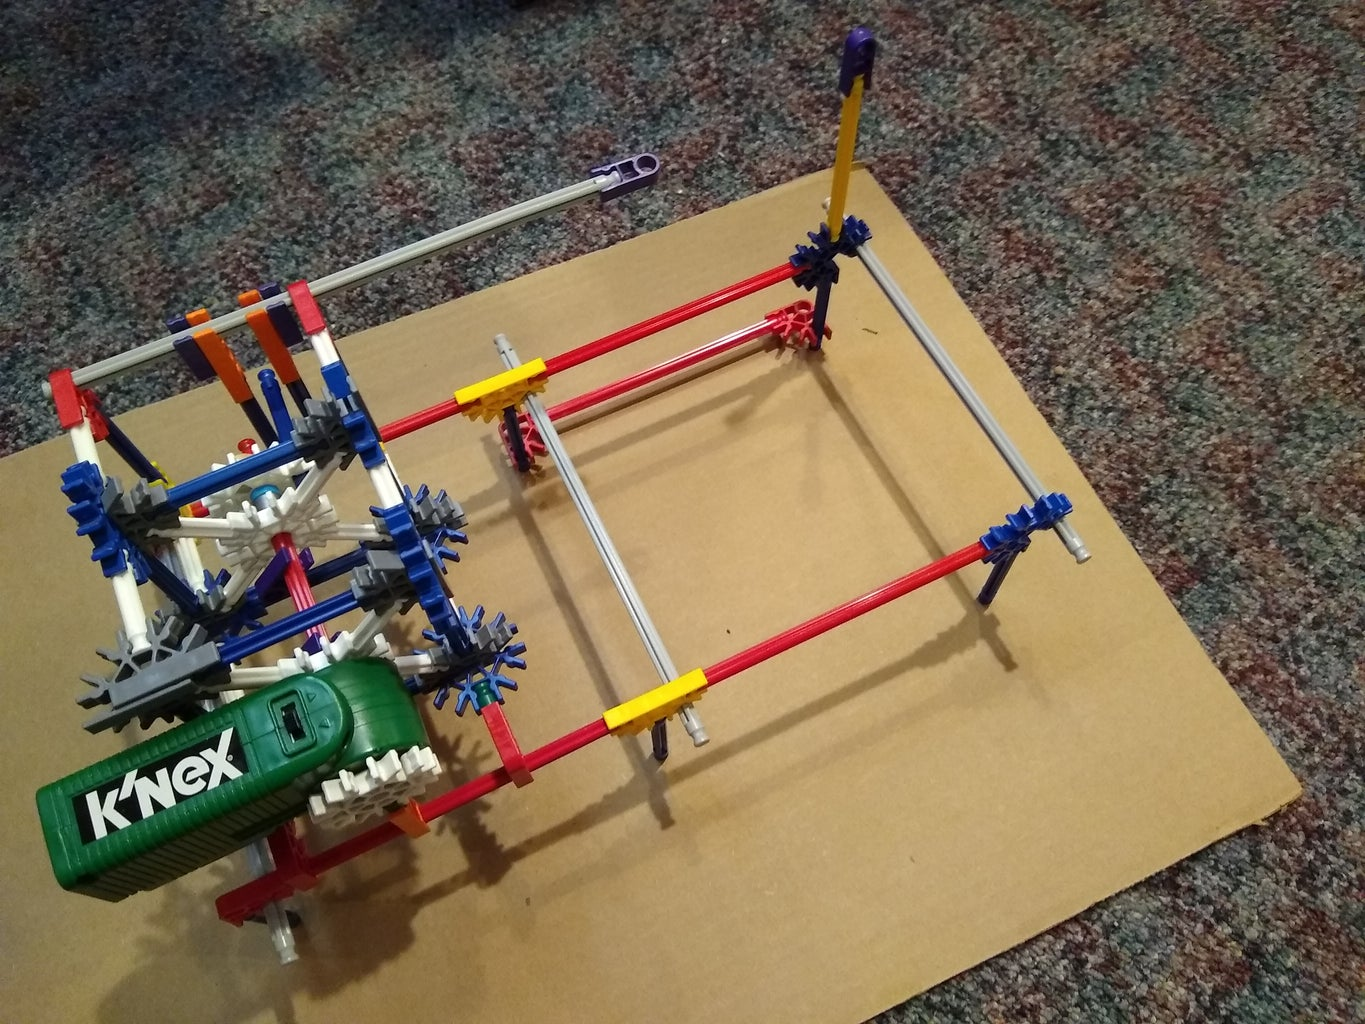 Attach the Motor/Yoke Assembly to the Origami Support Frame